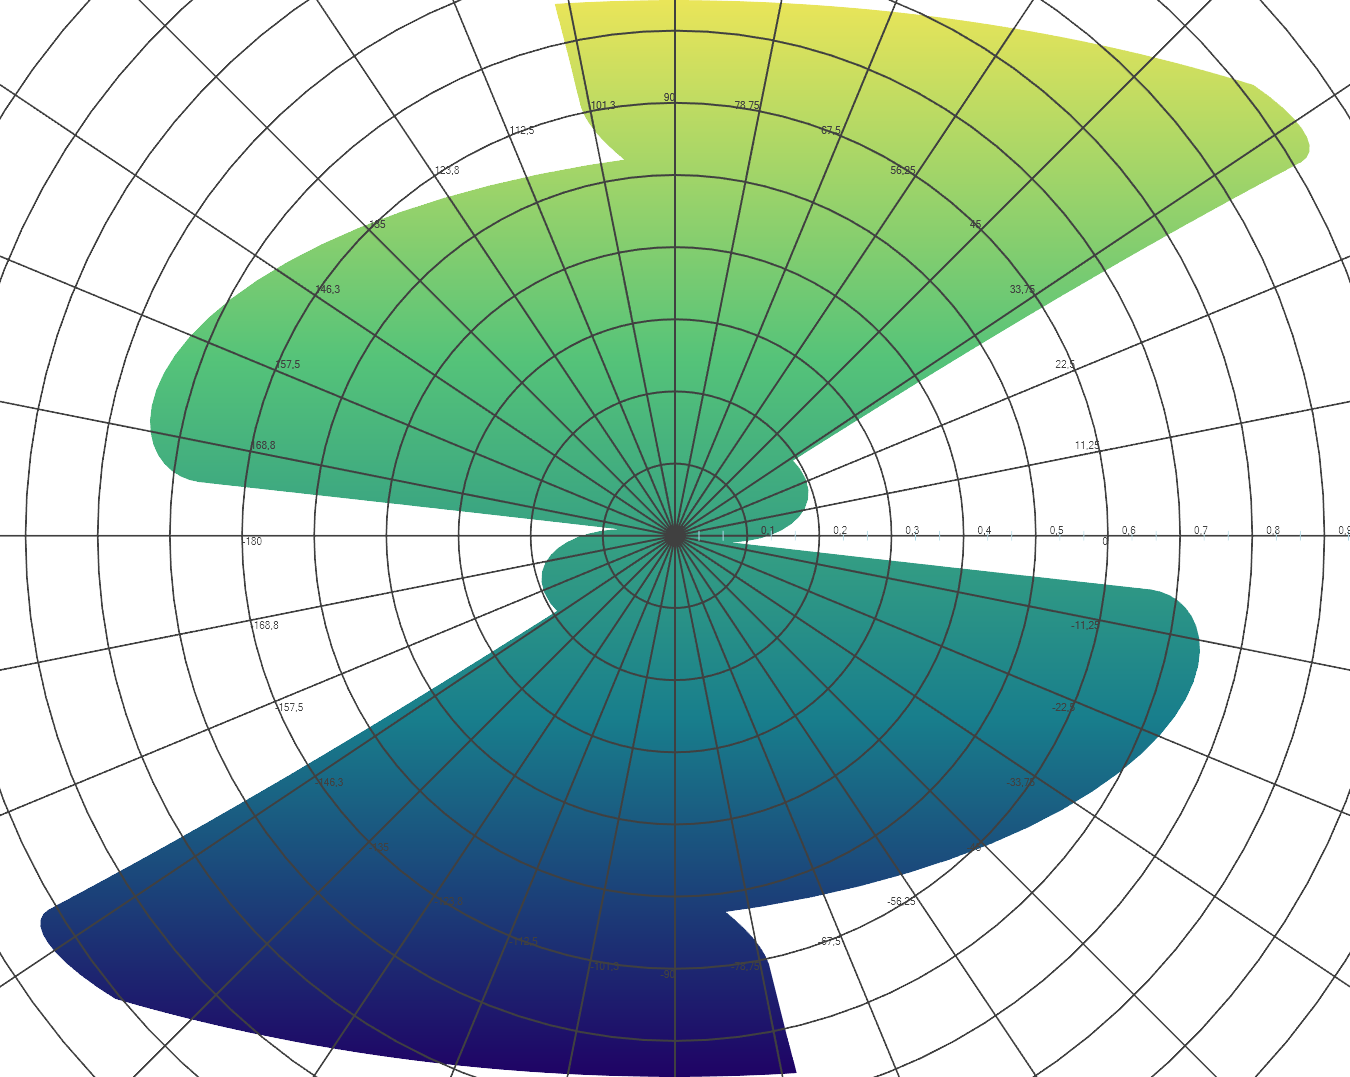 Spherical_in_XZ_projection